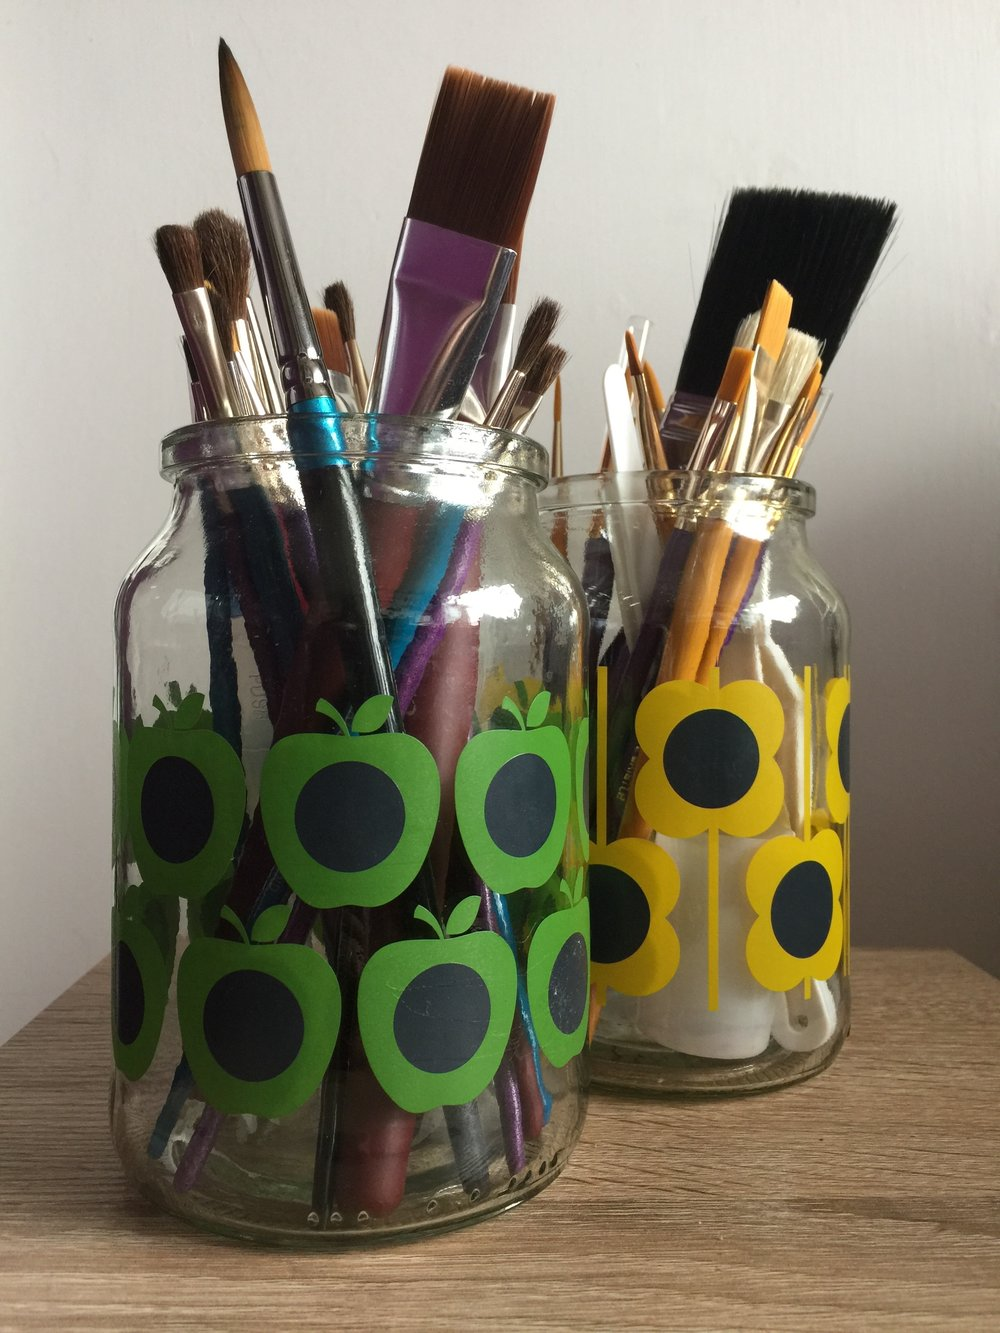 Orla Kiely coffee jar brush holders!